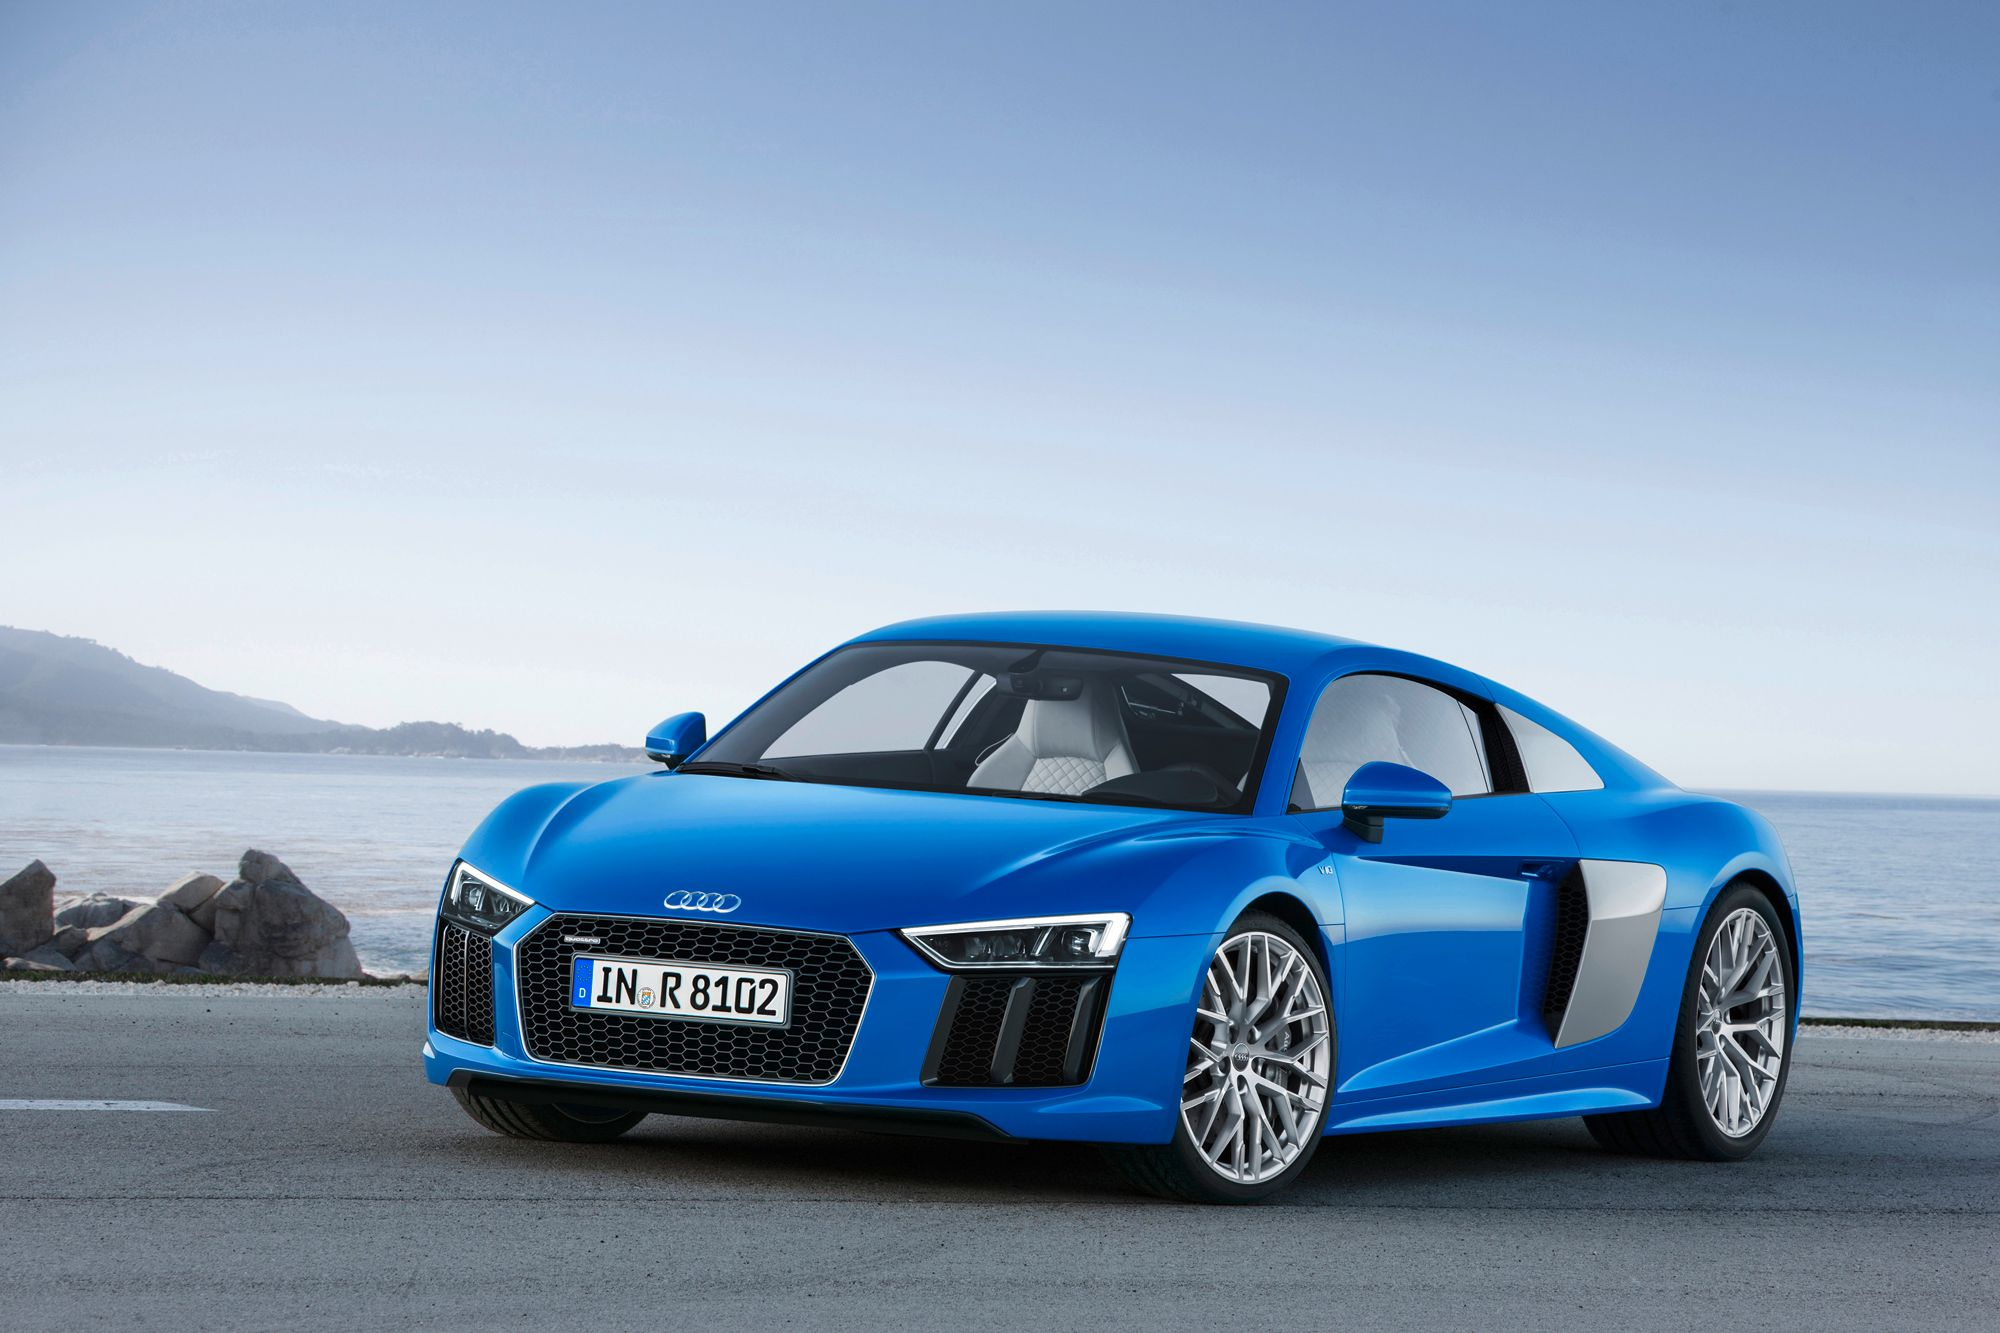 http://static2.therichestimages.com/cdn/1000/666/90/cw/wp-content/uploads/2015/04/2016-Audi-R81.jpg